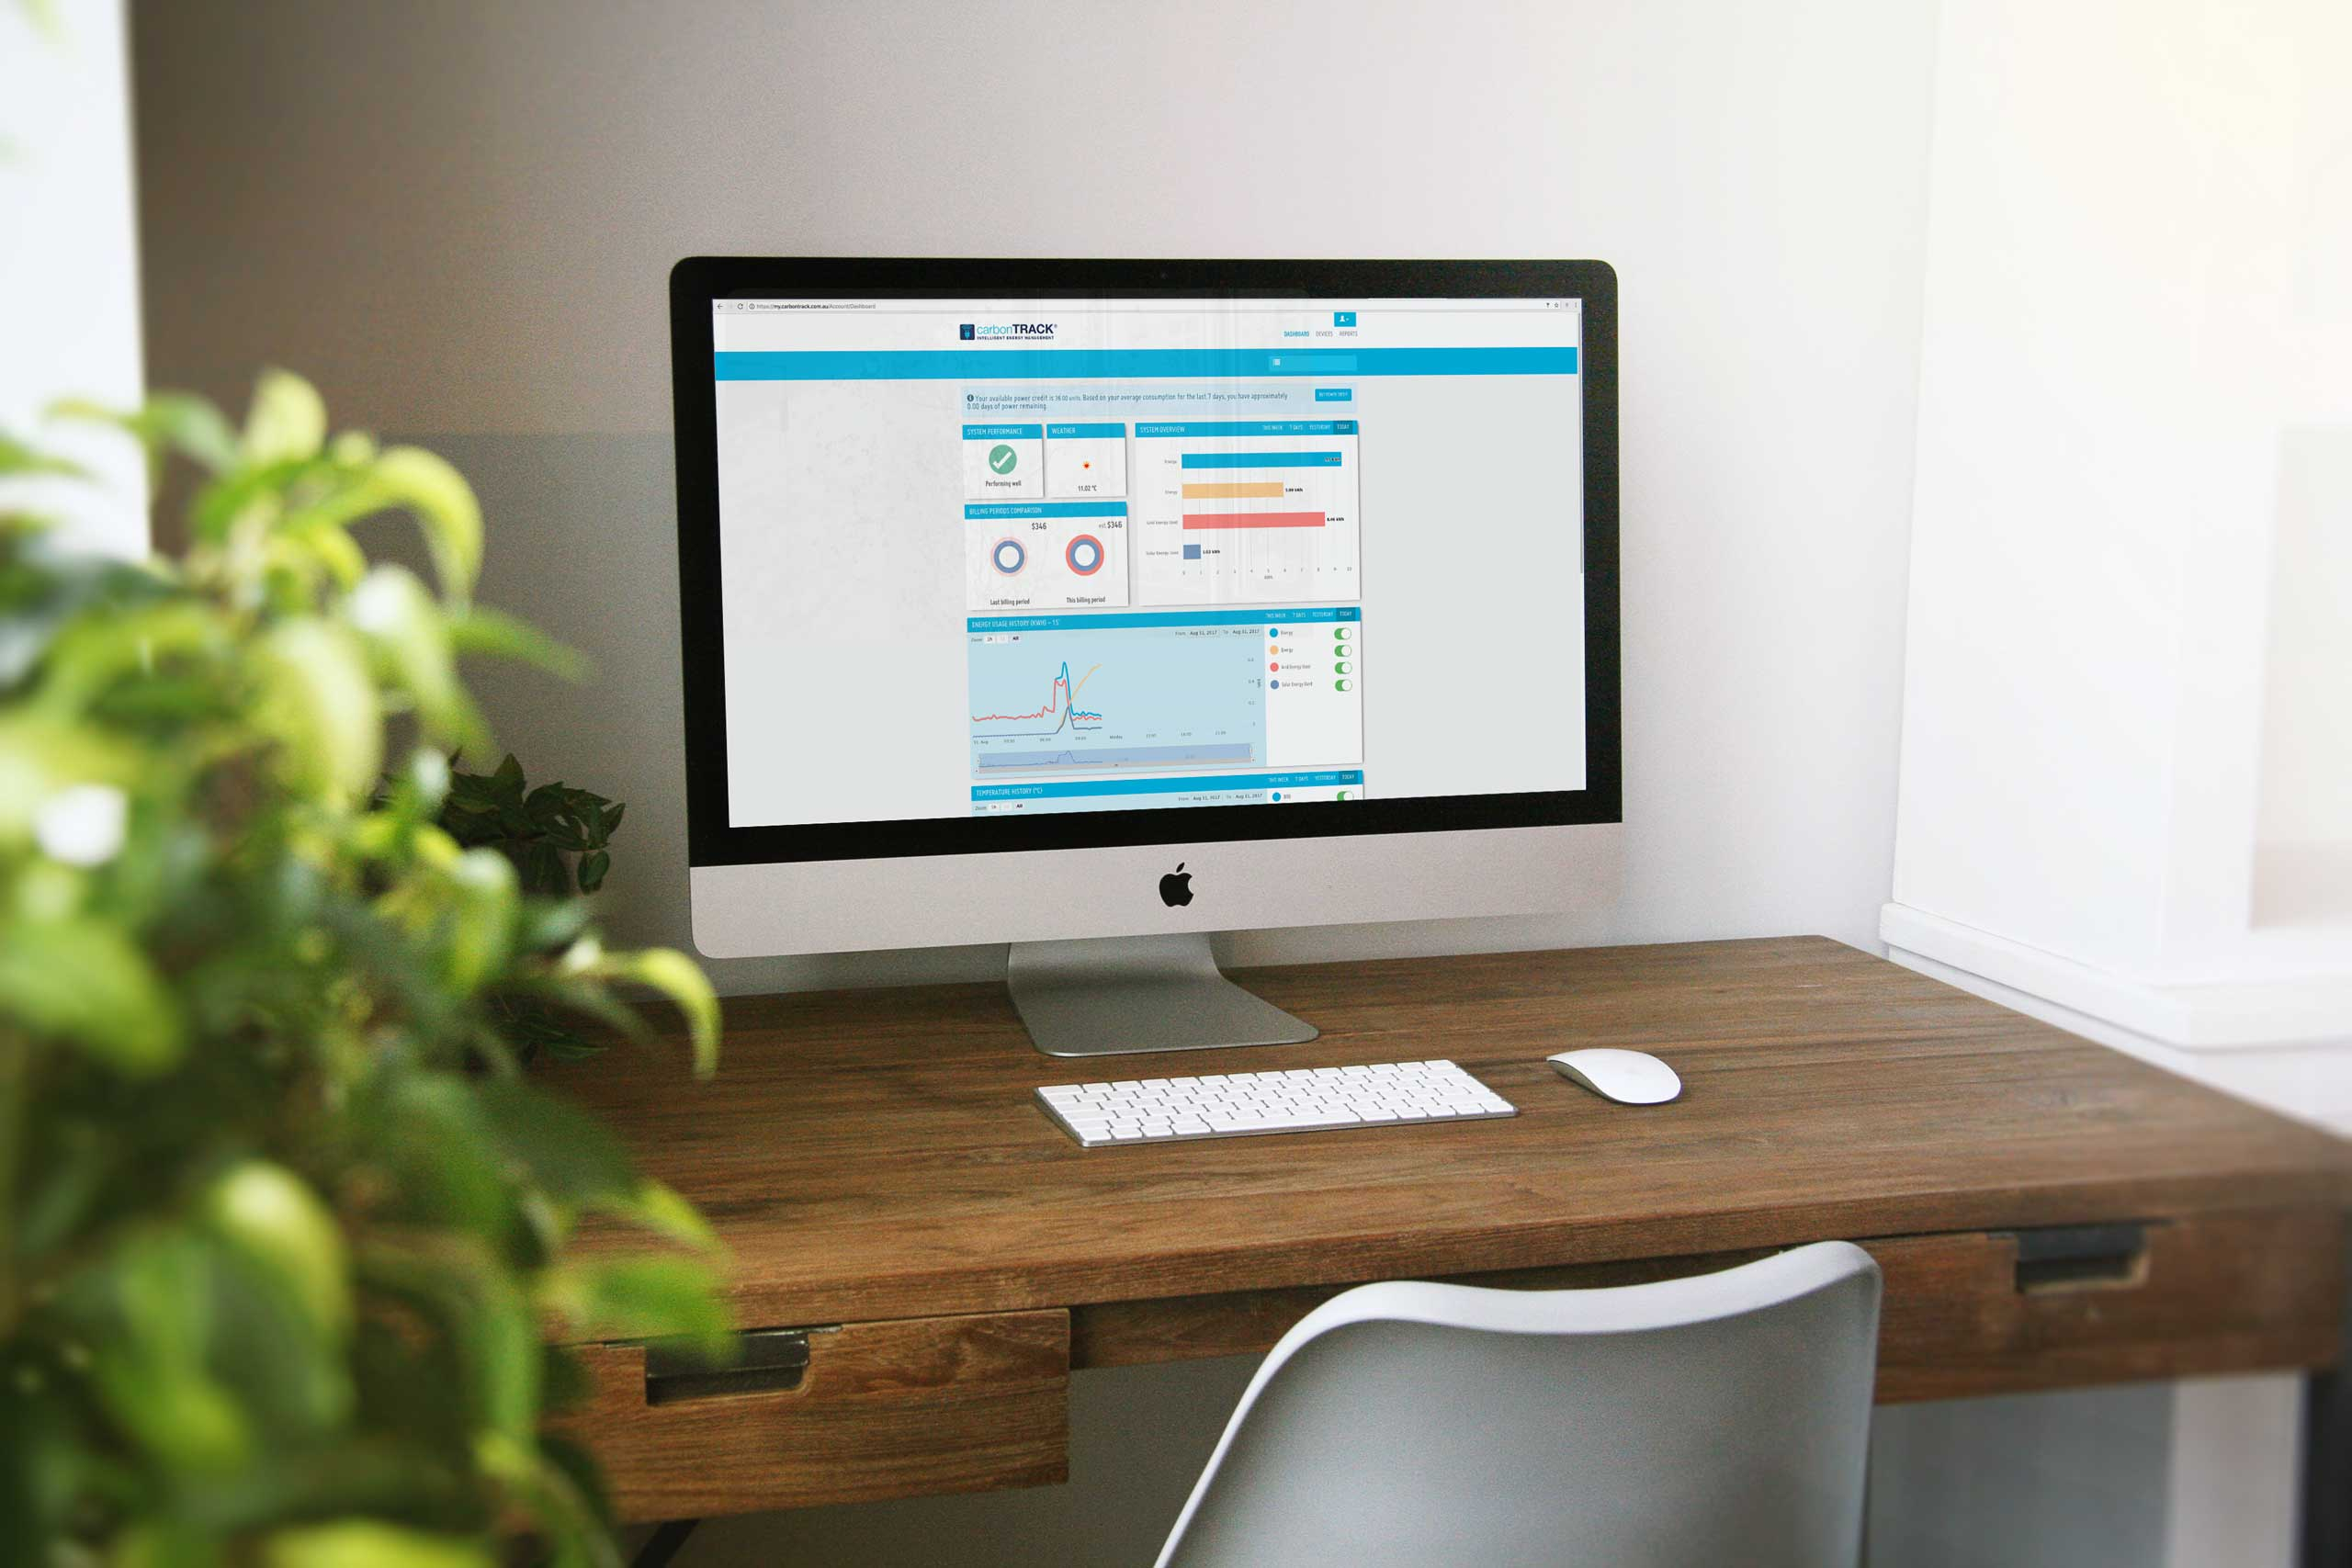 A computer, sitting atop a wooden desk in a home, shows the carbonTRACK online dashboard